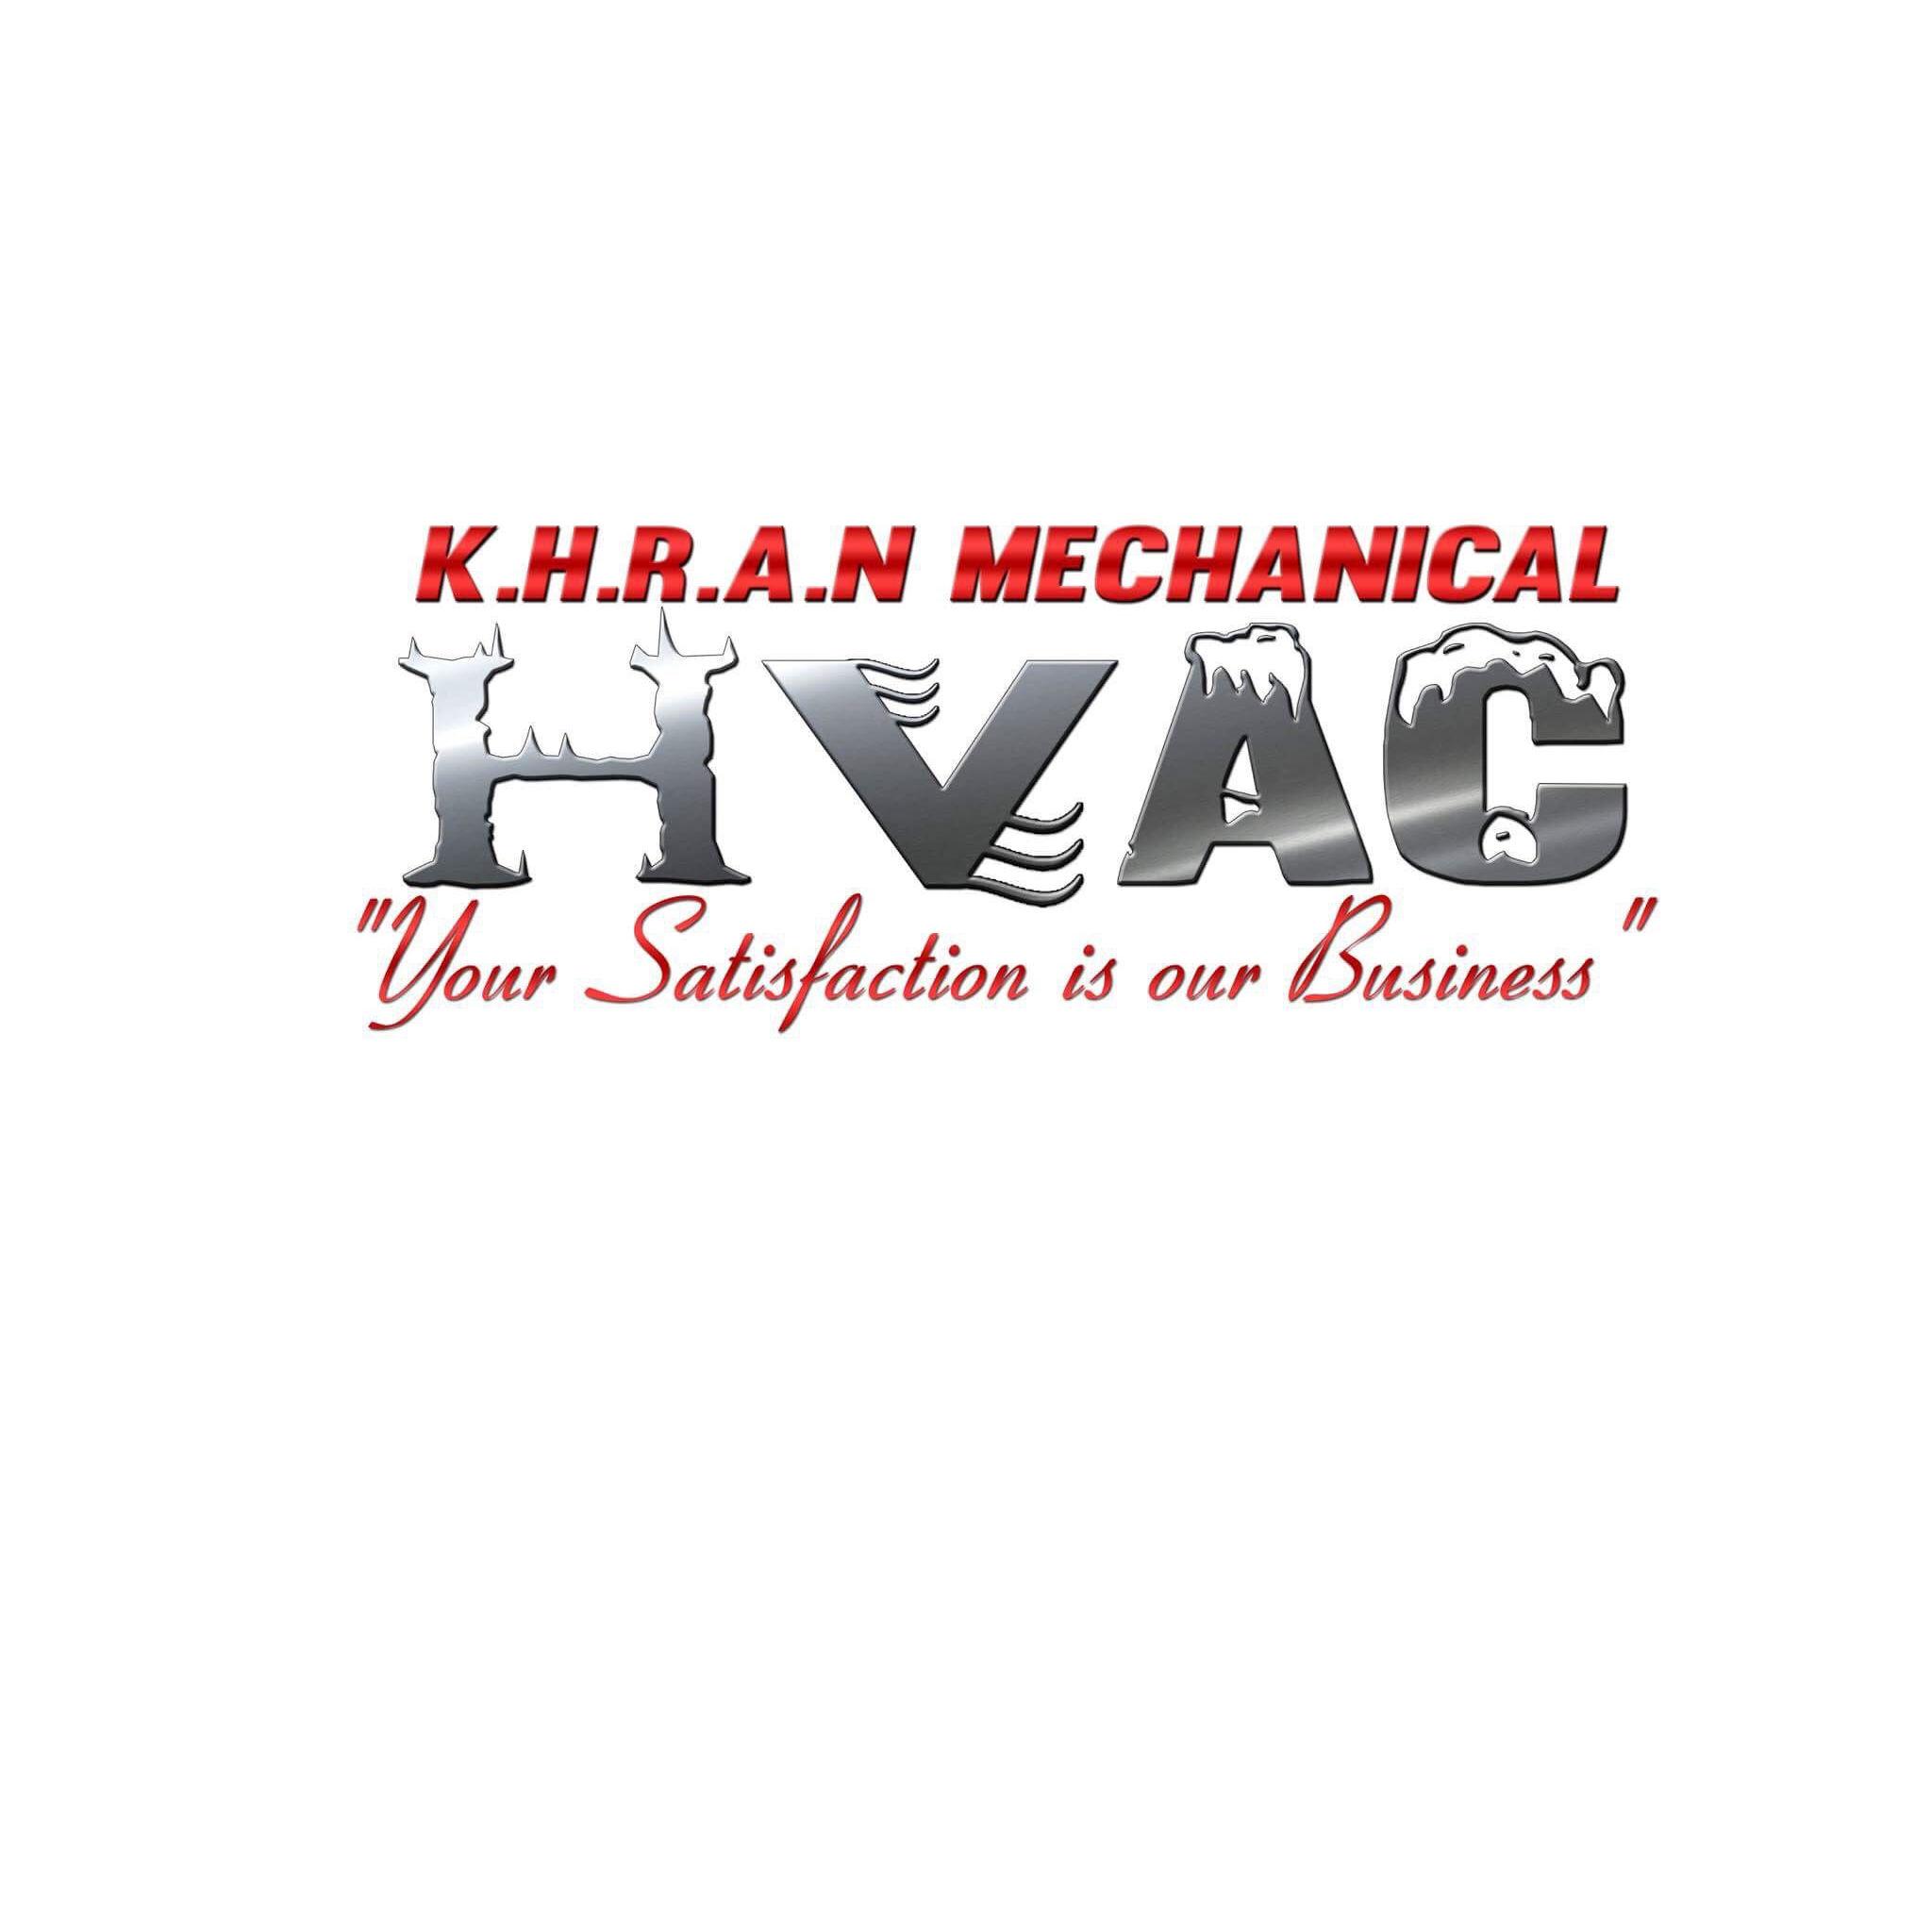 Khran Mechanical